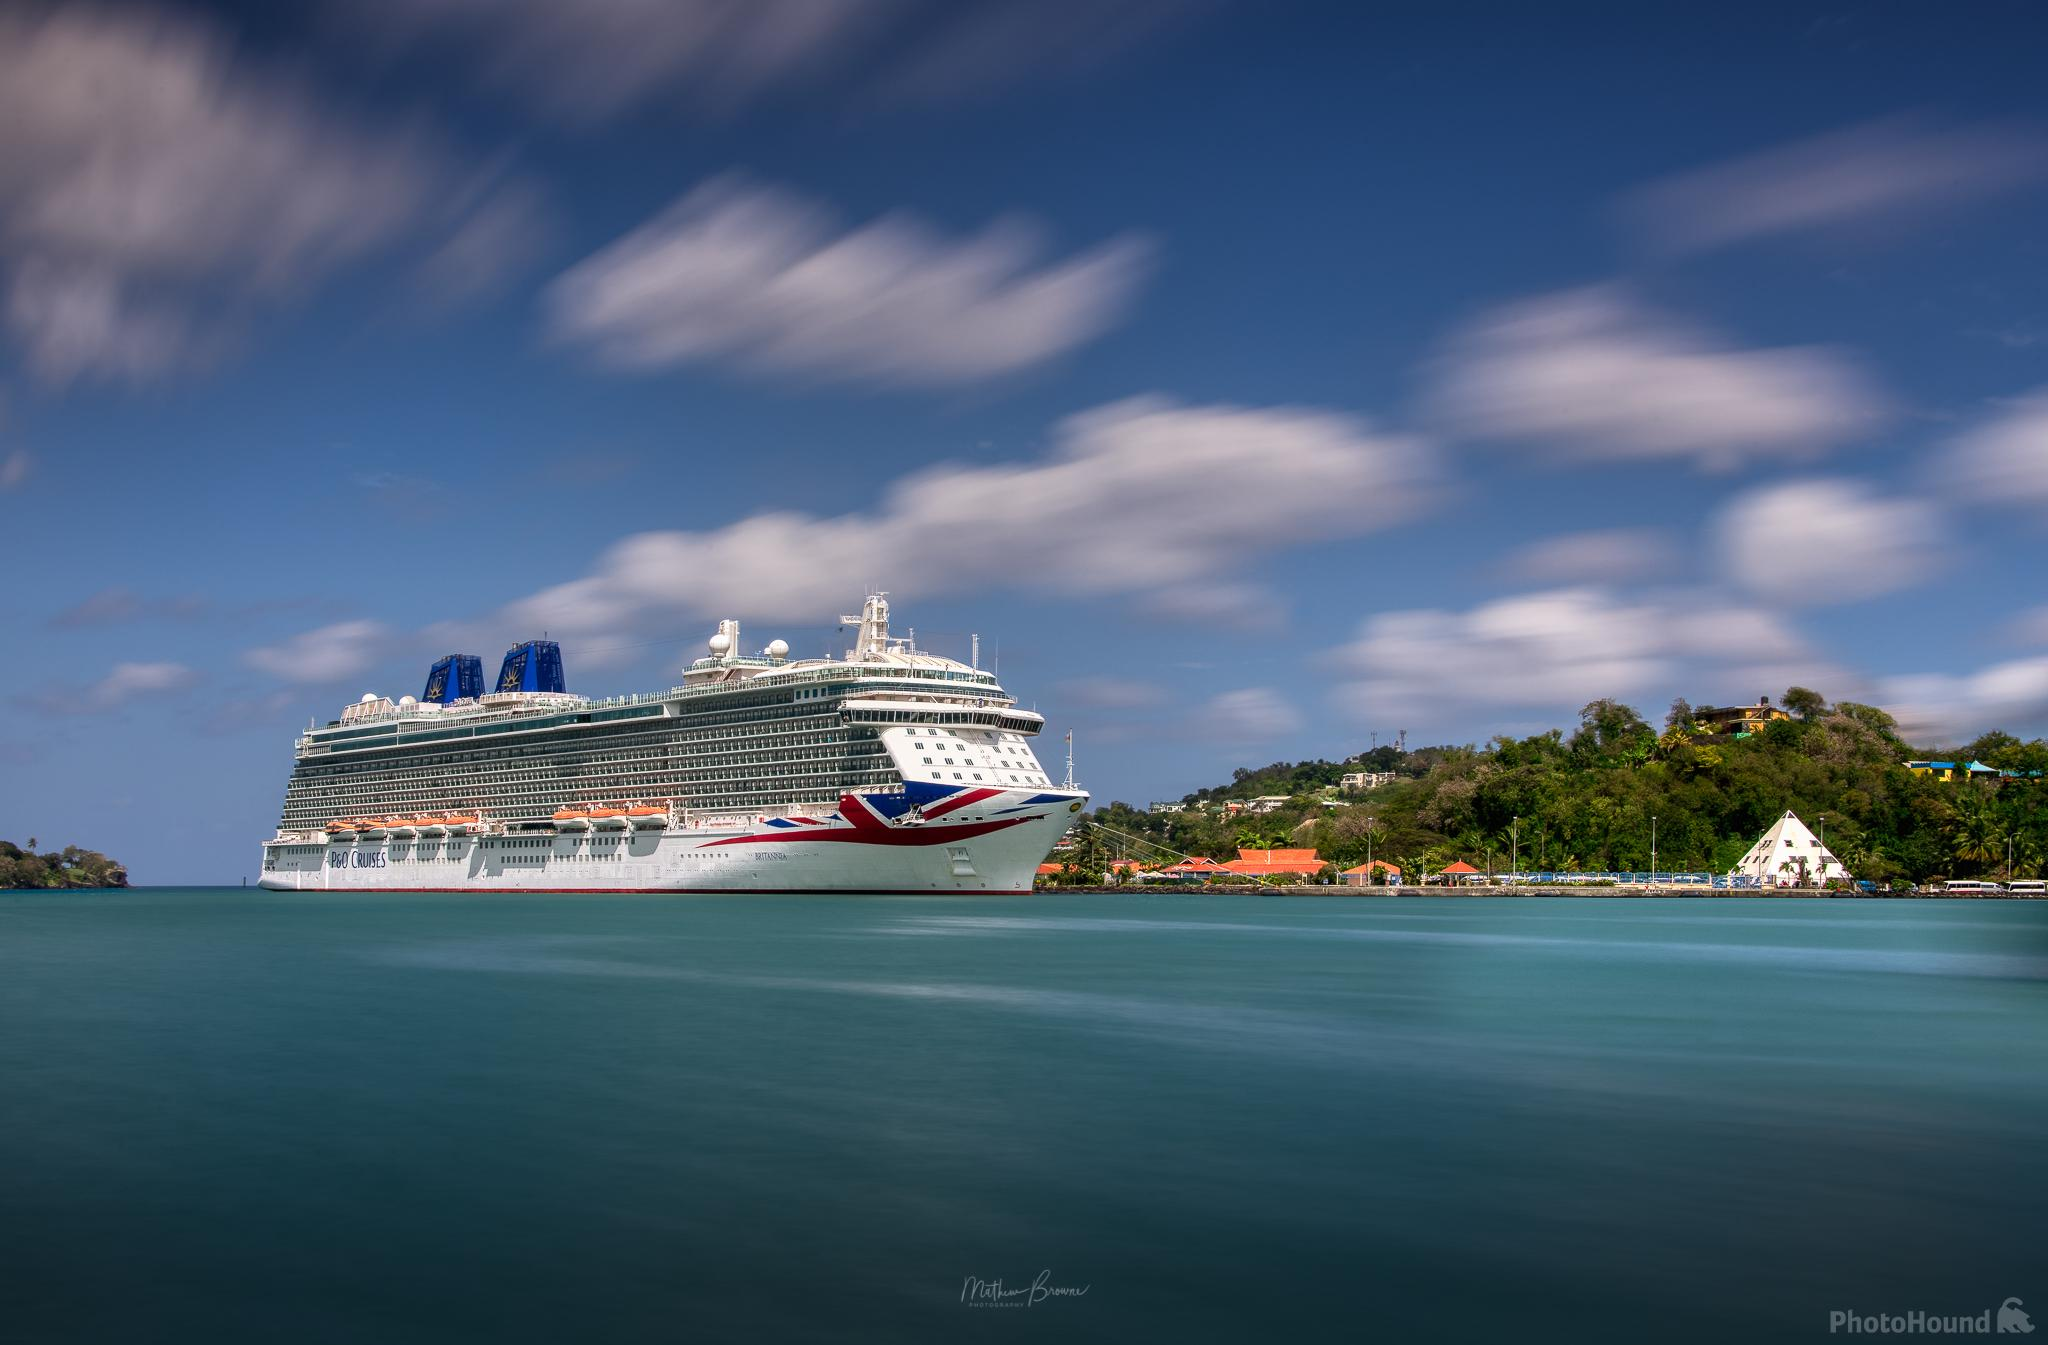 P&O Cruises Britannia, docked in Castries